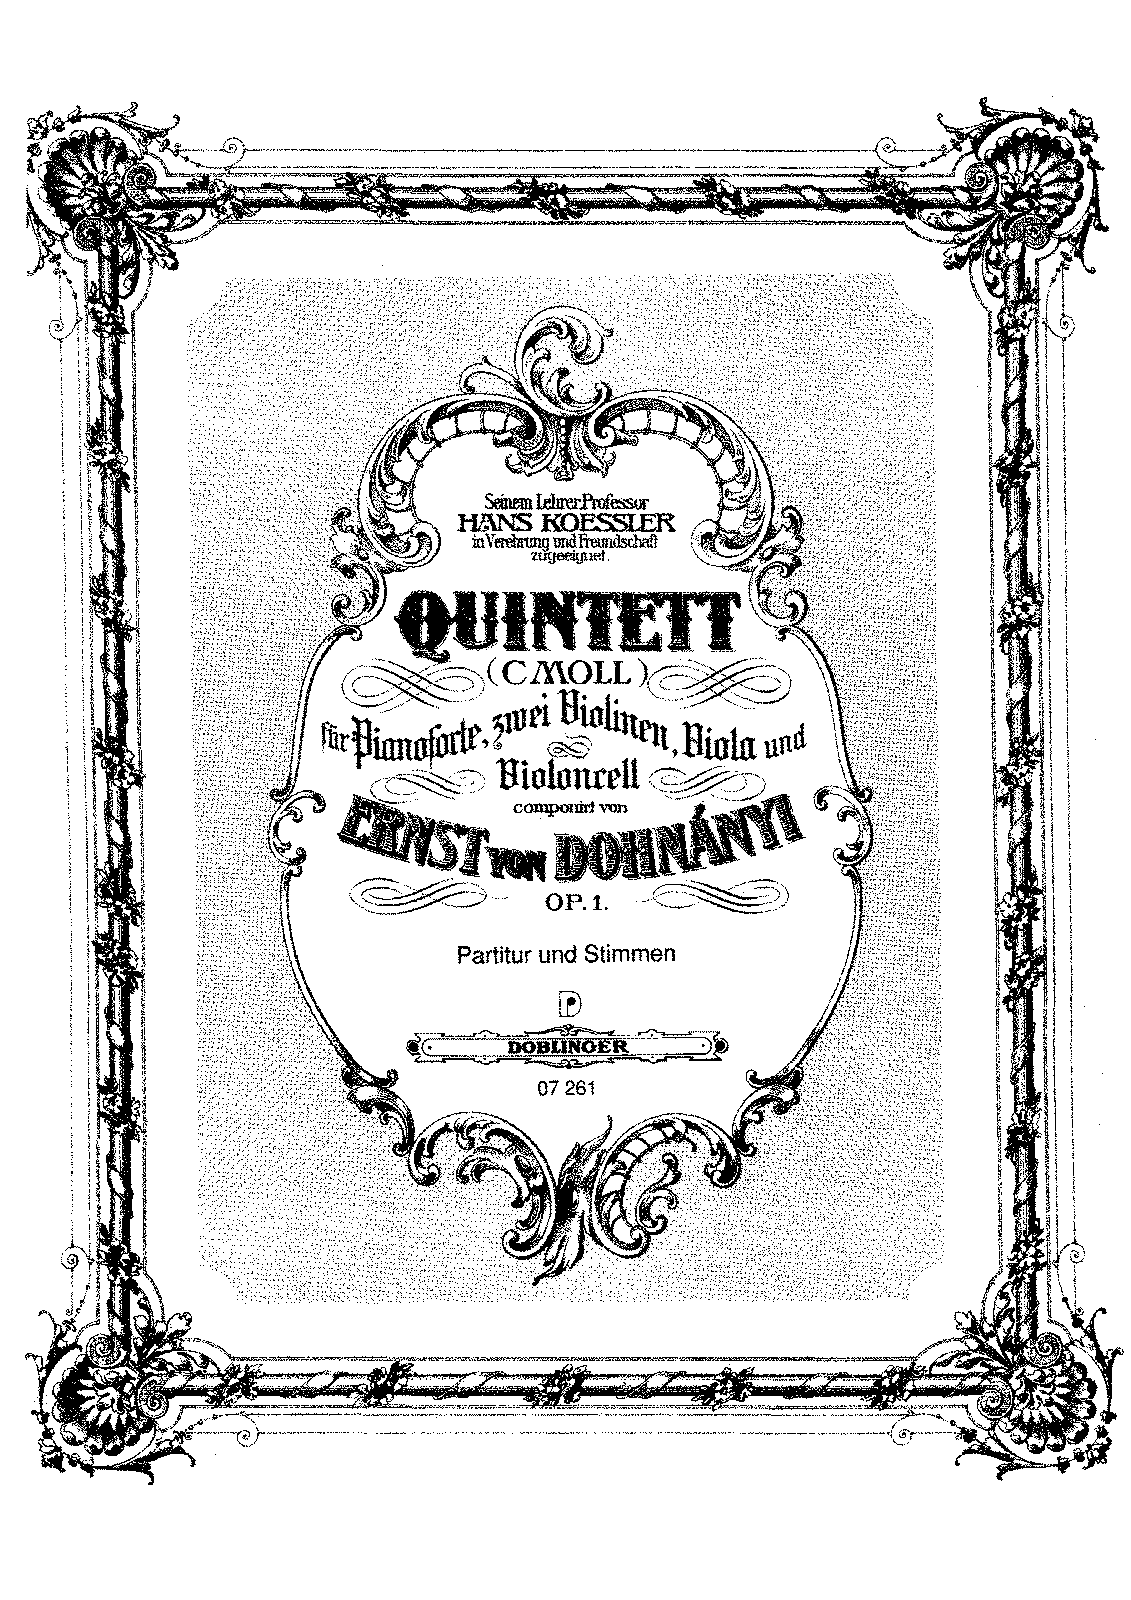 PMLP222522-Dohnanyi, Erno - Piano Quintet No. 1 in C minor, Op. 1.pdf